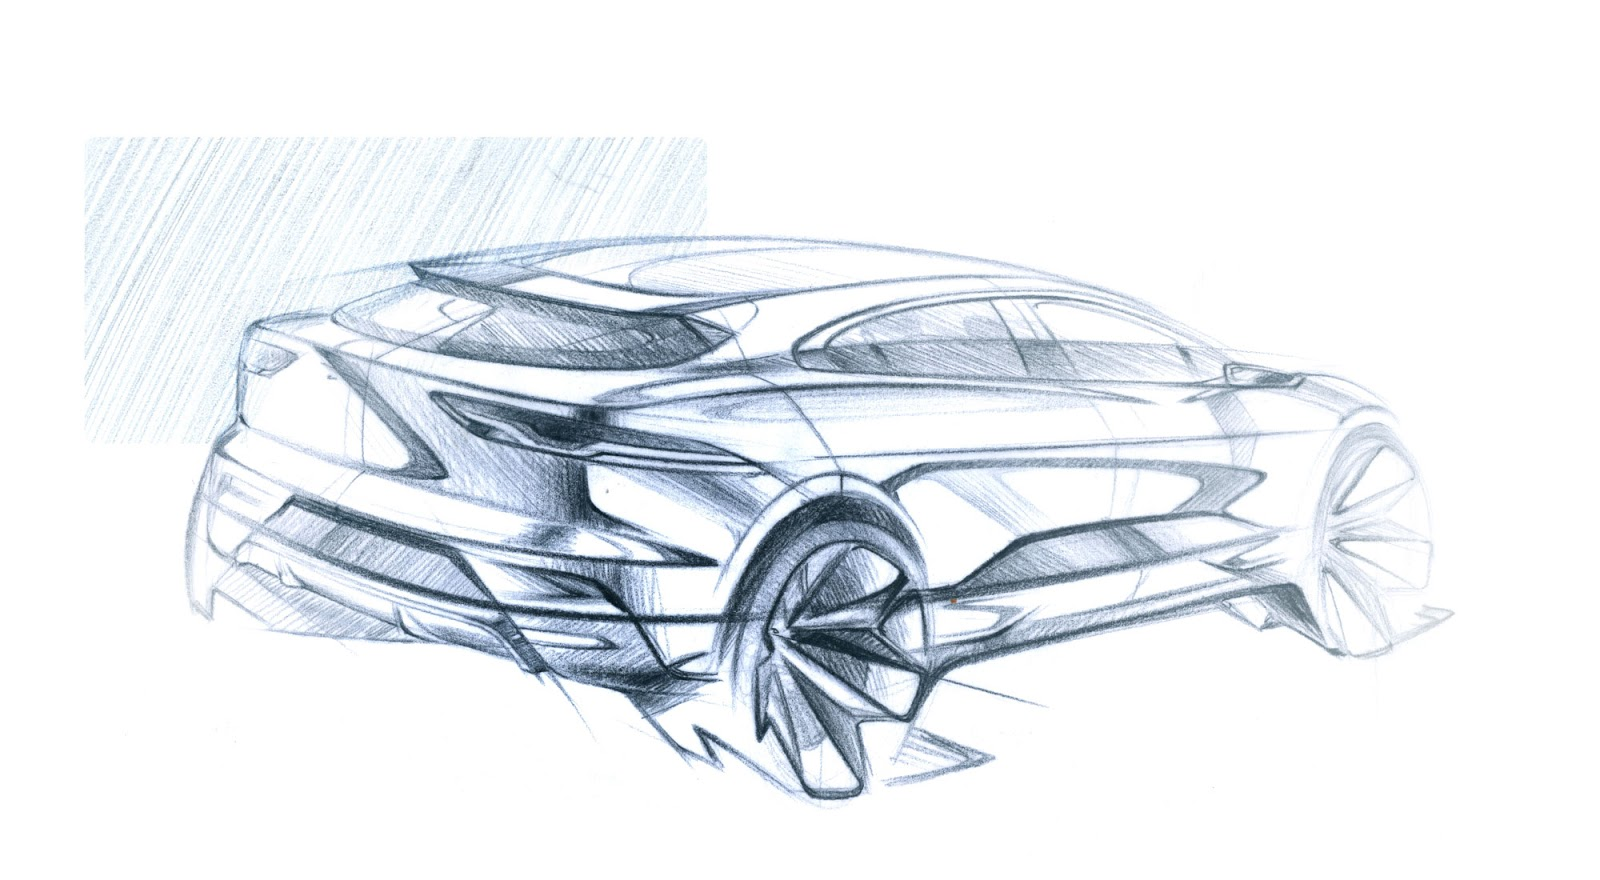 Jaguar I-Pace pencil sketch - rear three-quarter view